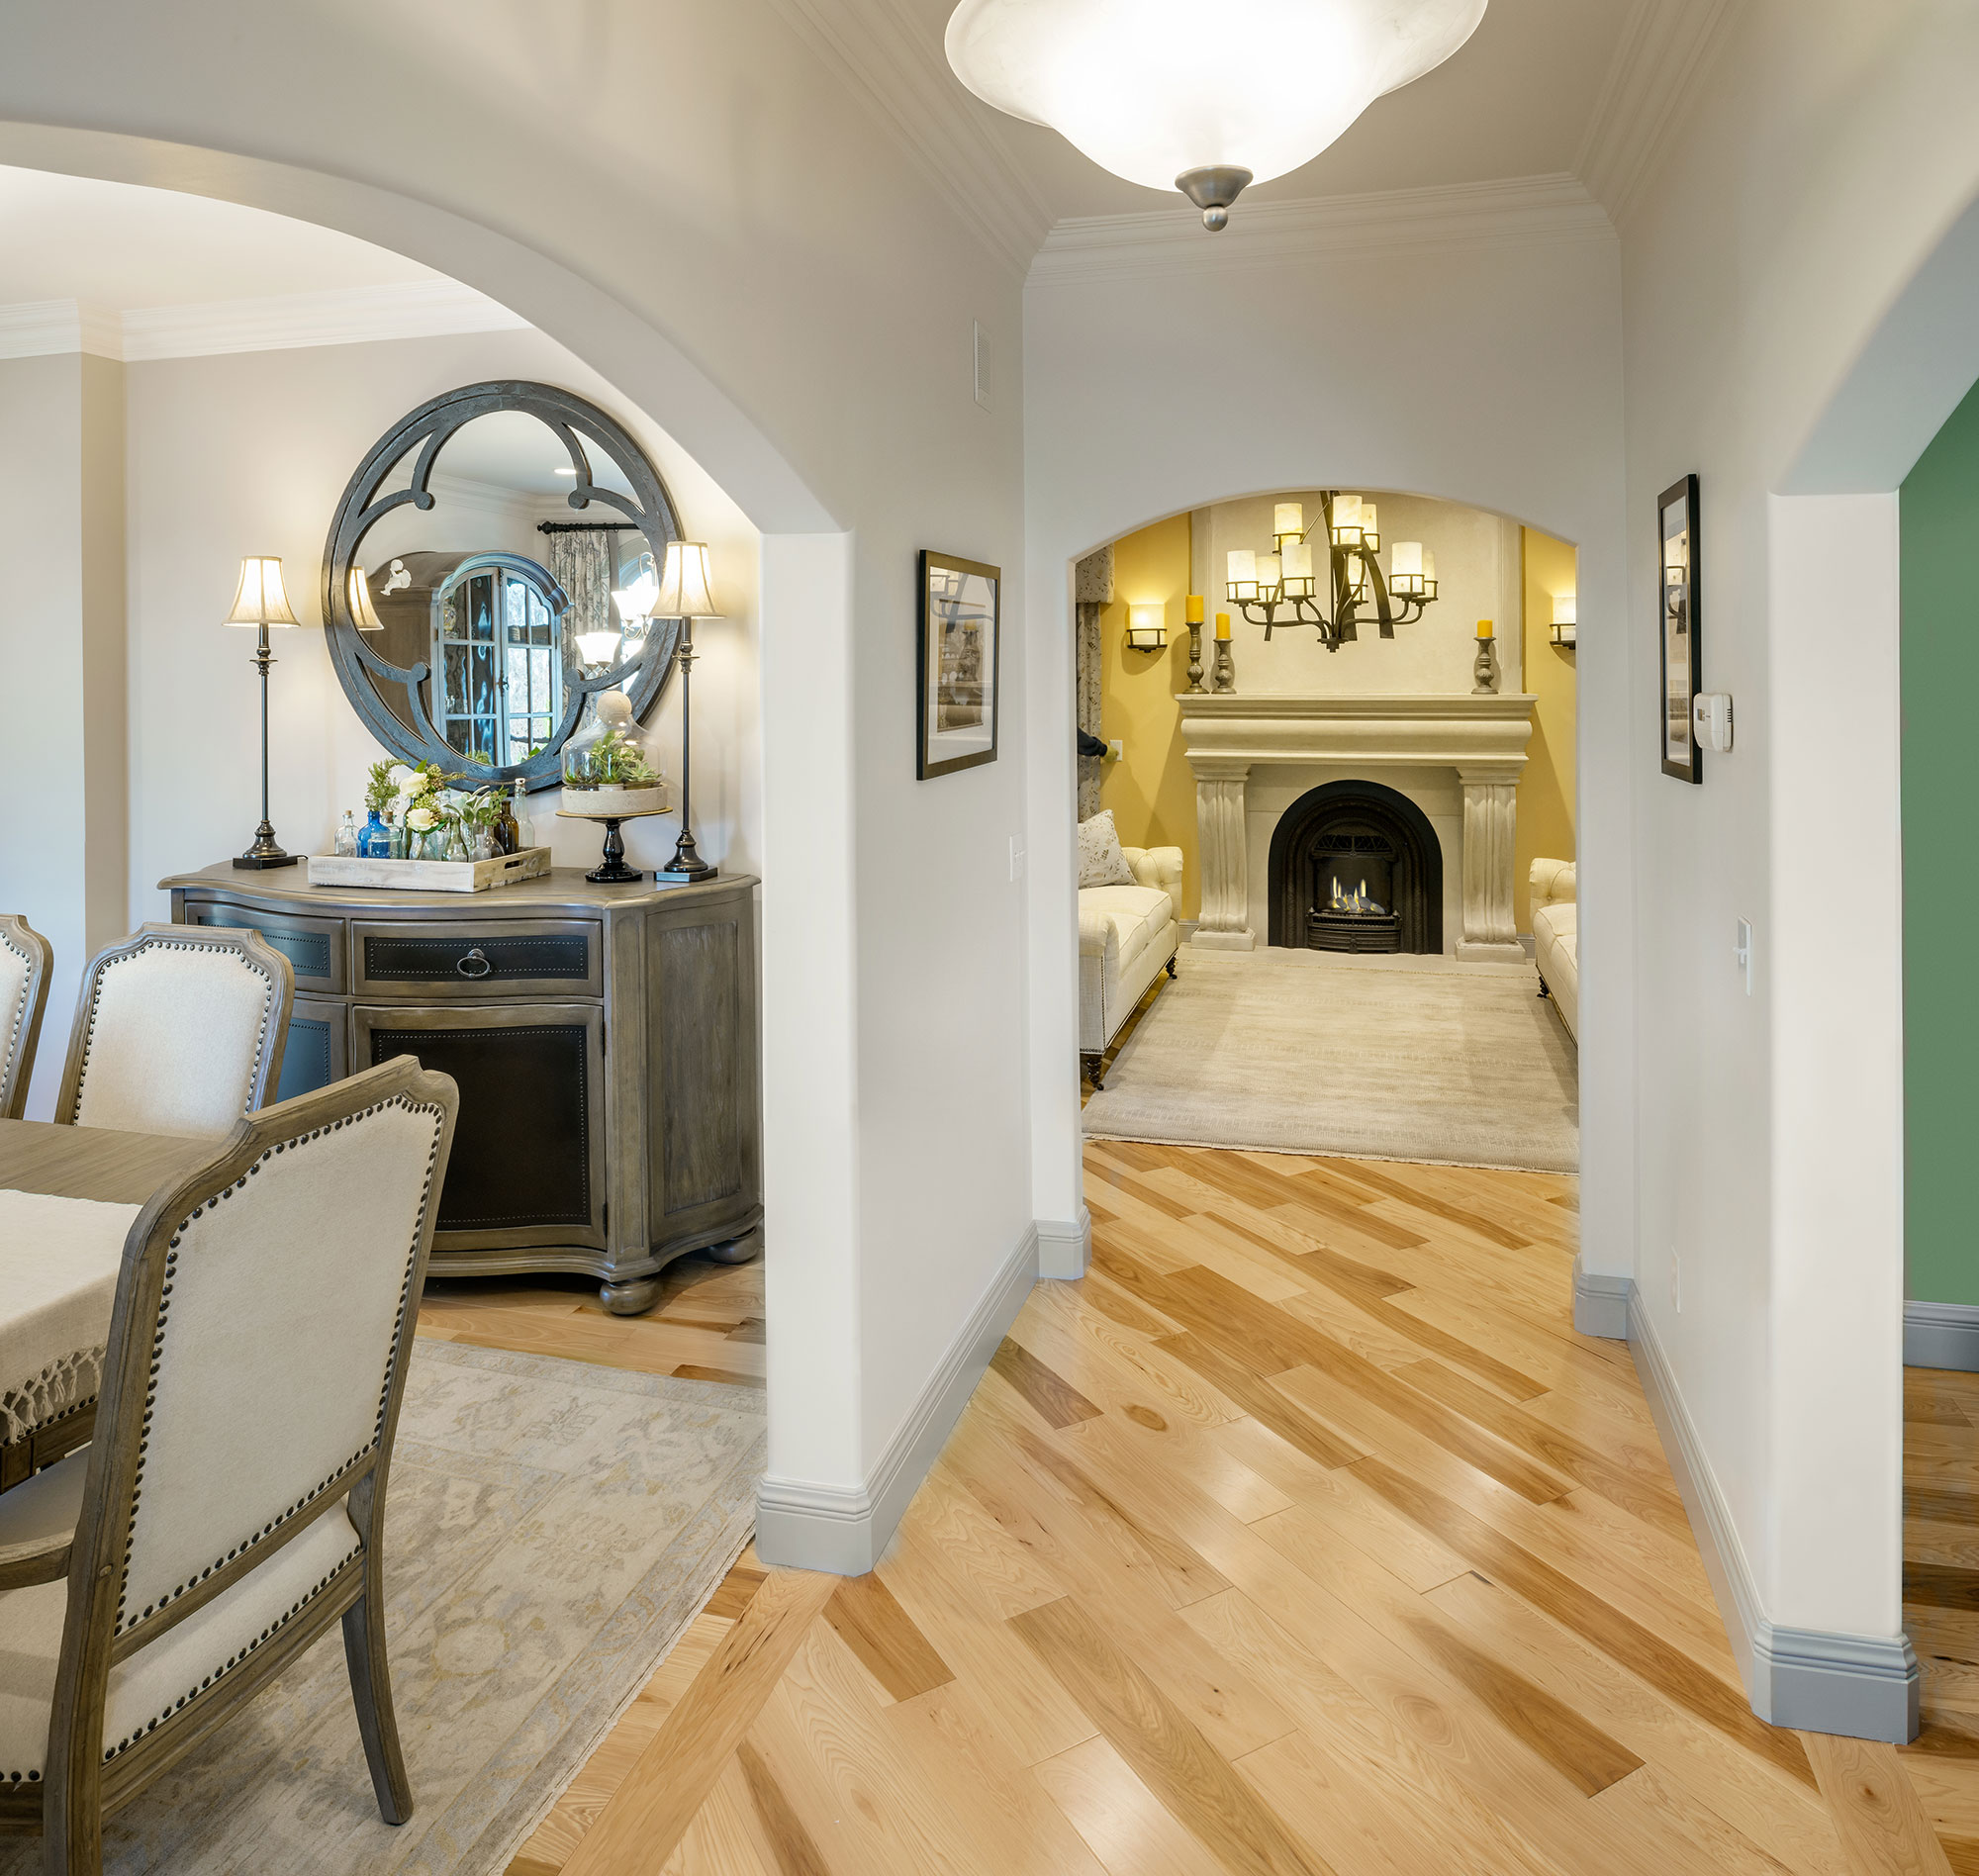 Luxurious, personalized and functional living spaces for homeowners in RI